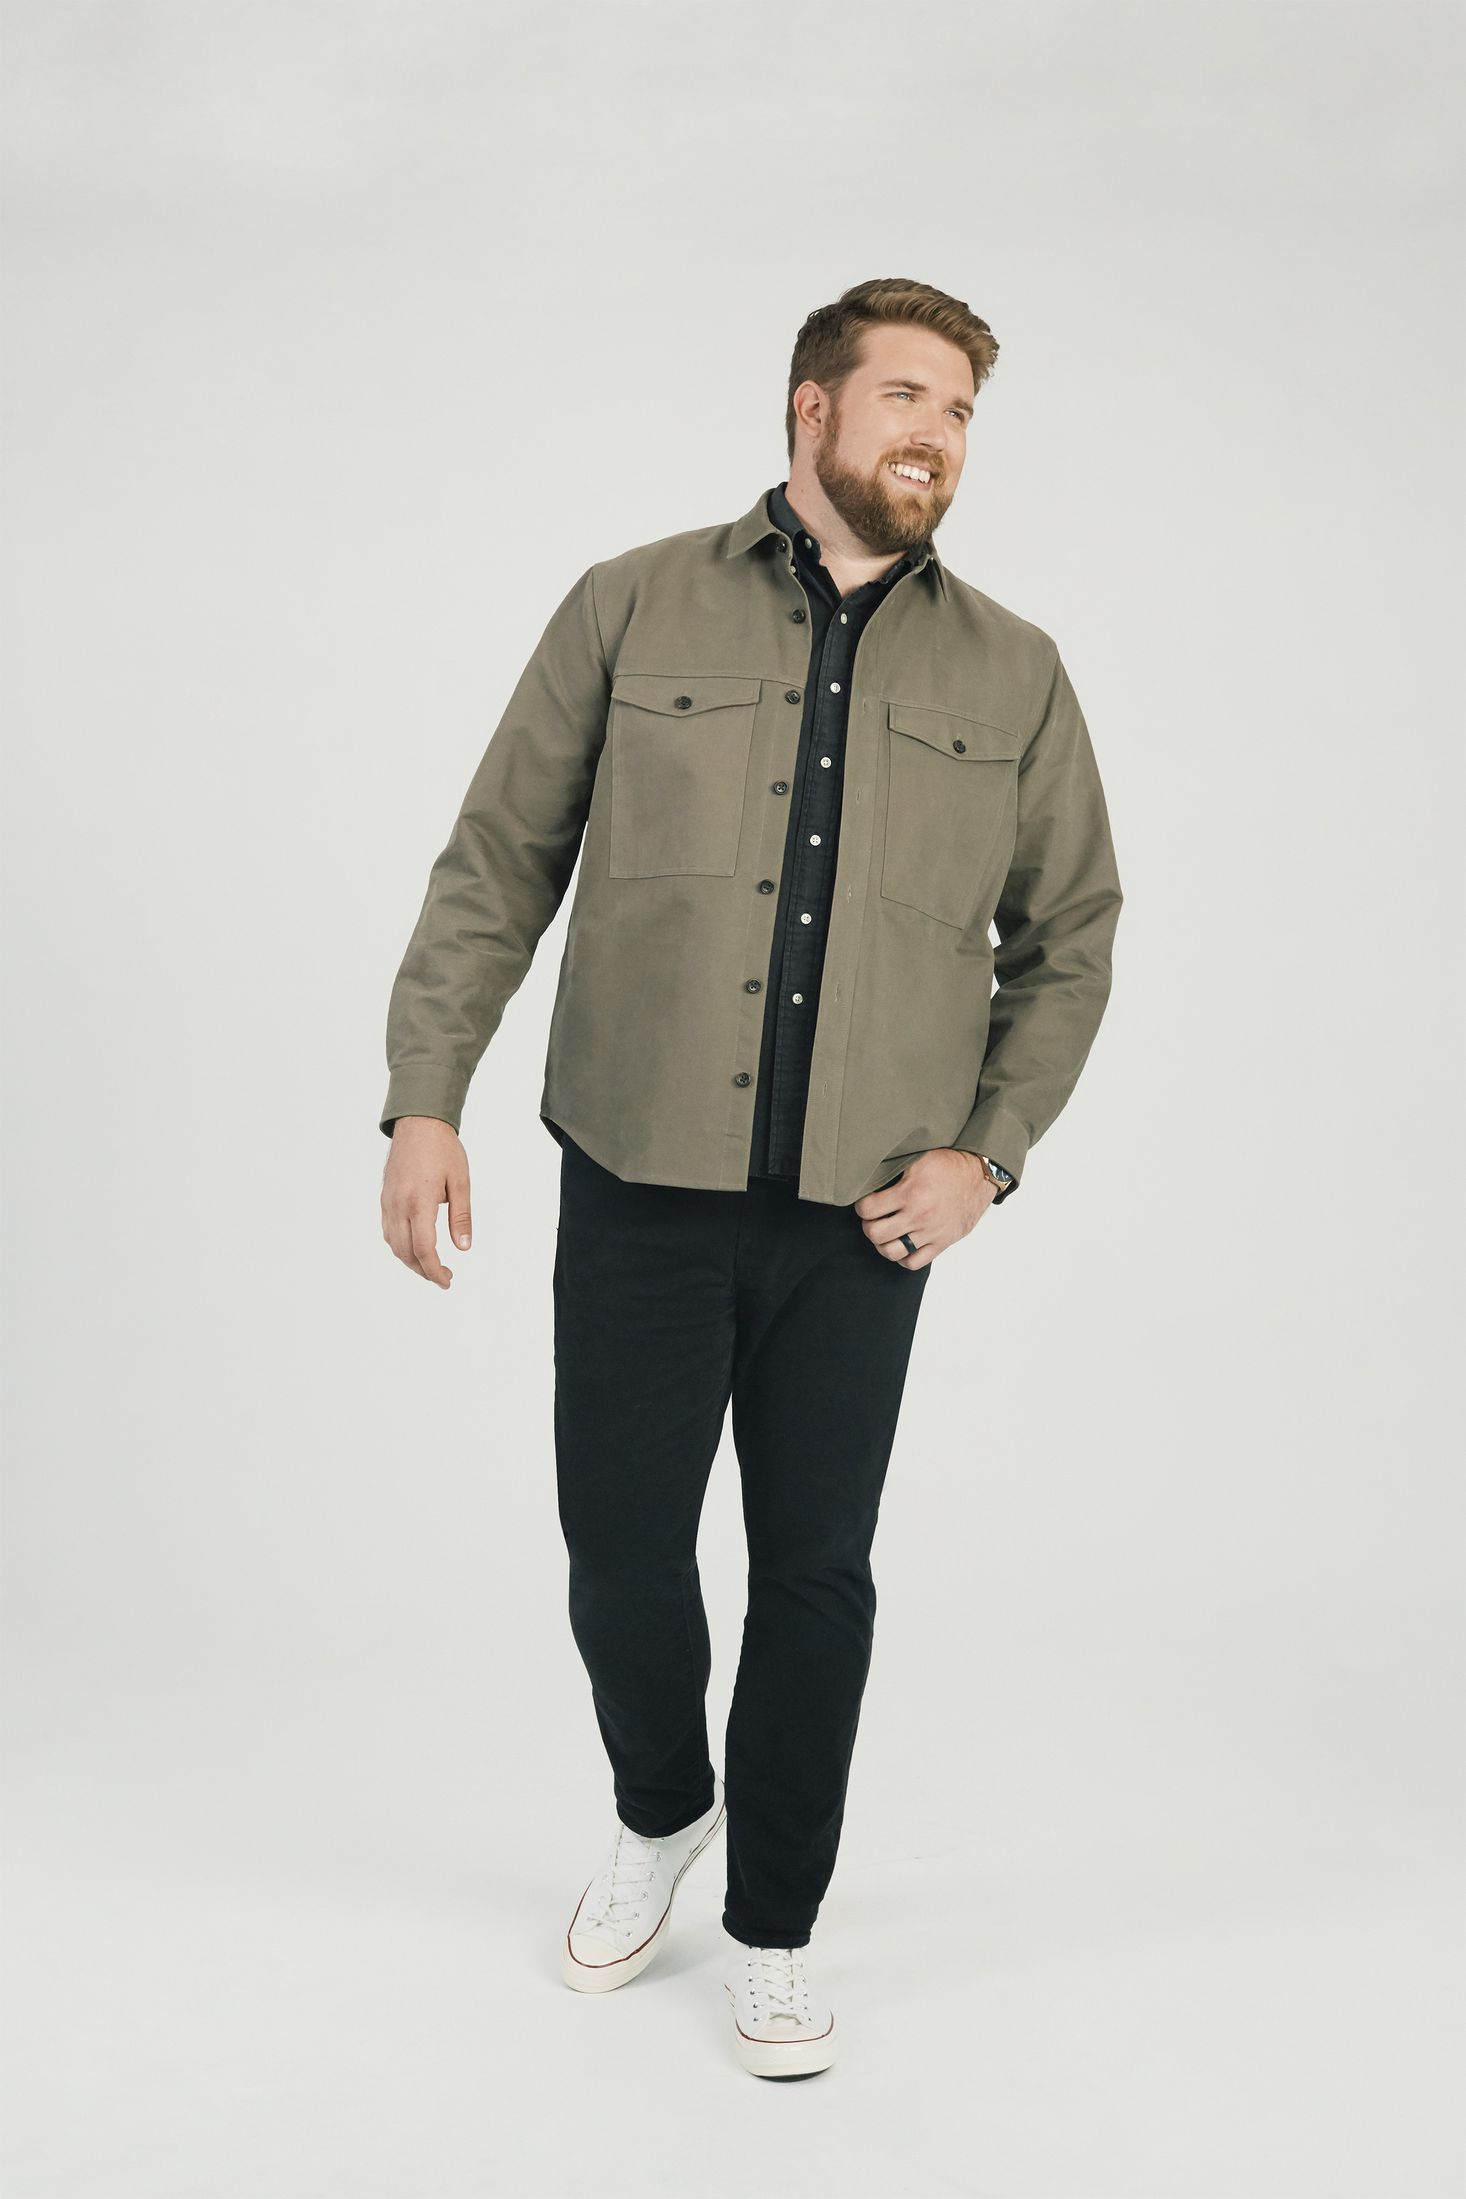 36142a29f8f Why Big and Tall Men s Clothing Is So Hard to Find - Men s Plus Size Fashion  Brands